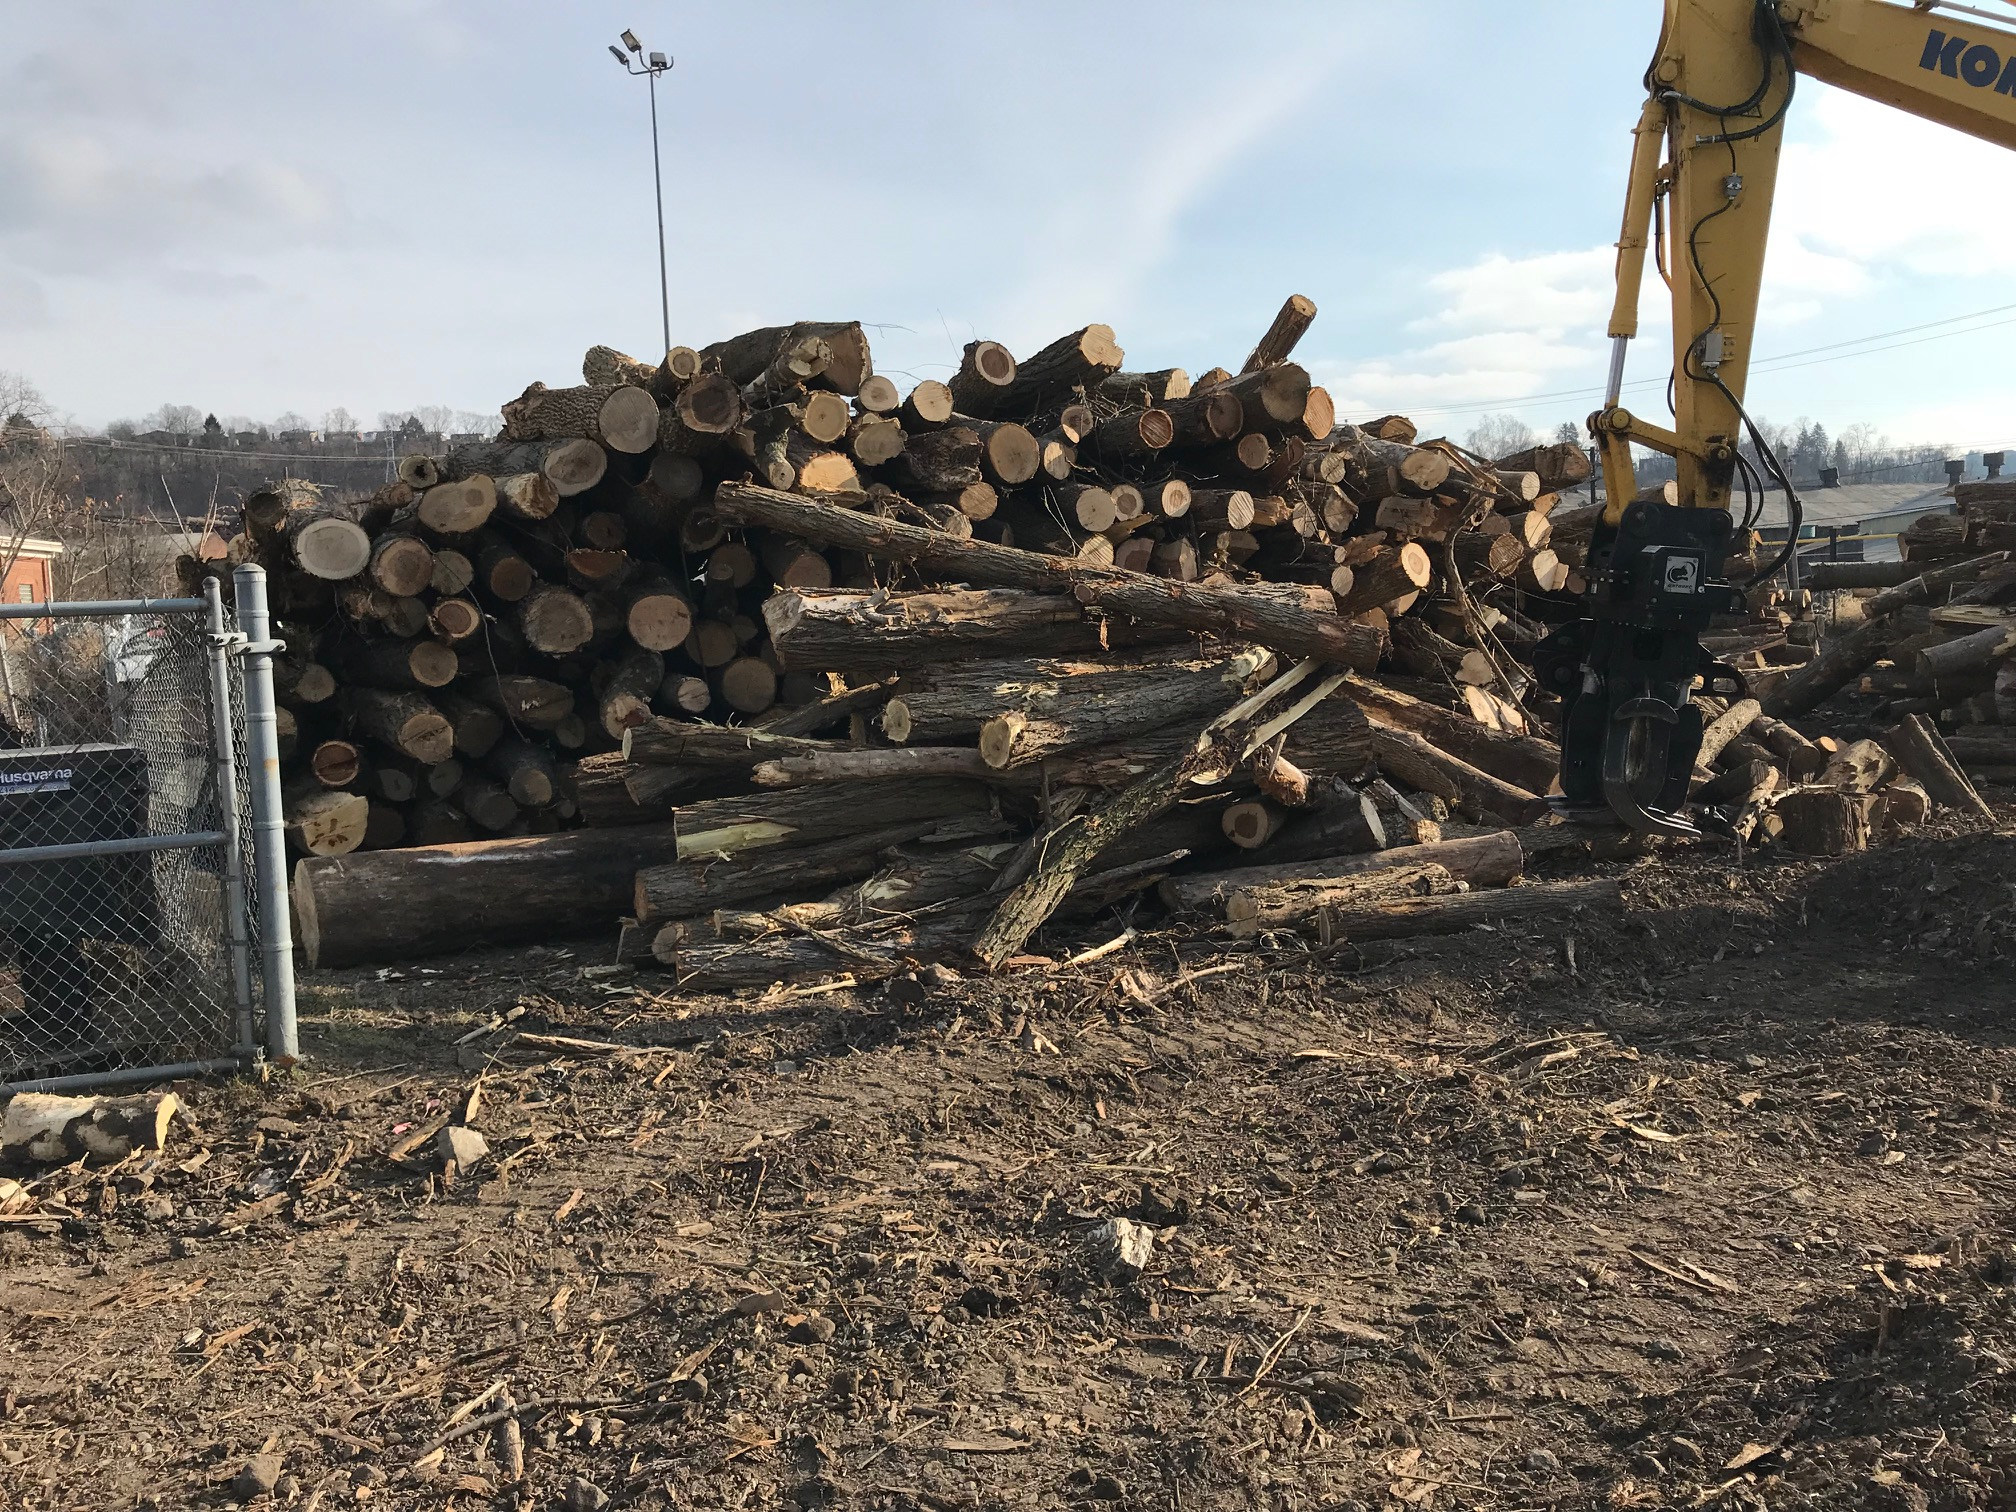 TREE SERVICES - Land ClearingRight of Way ClearingUtility ClearingGrubbingStump Removal